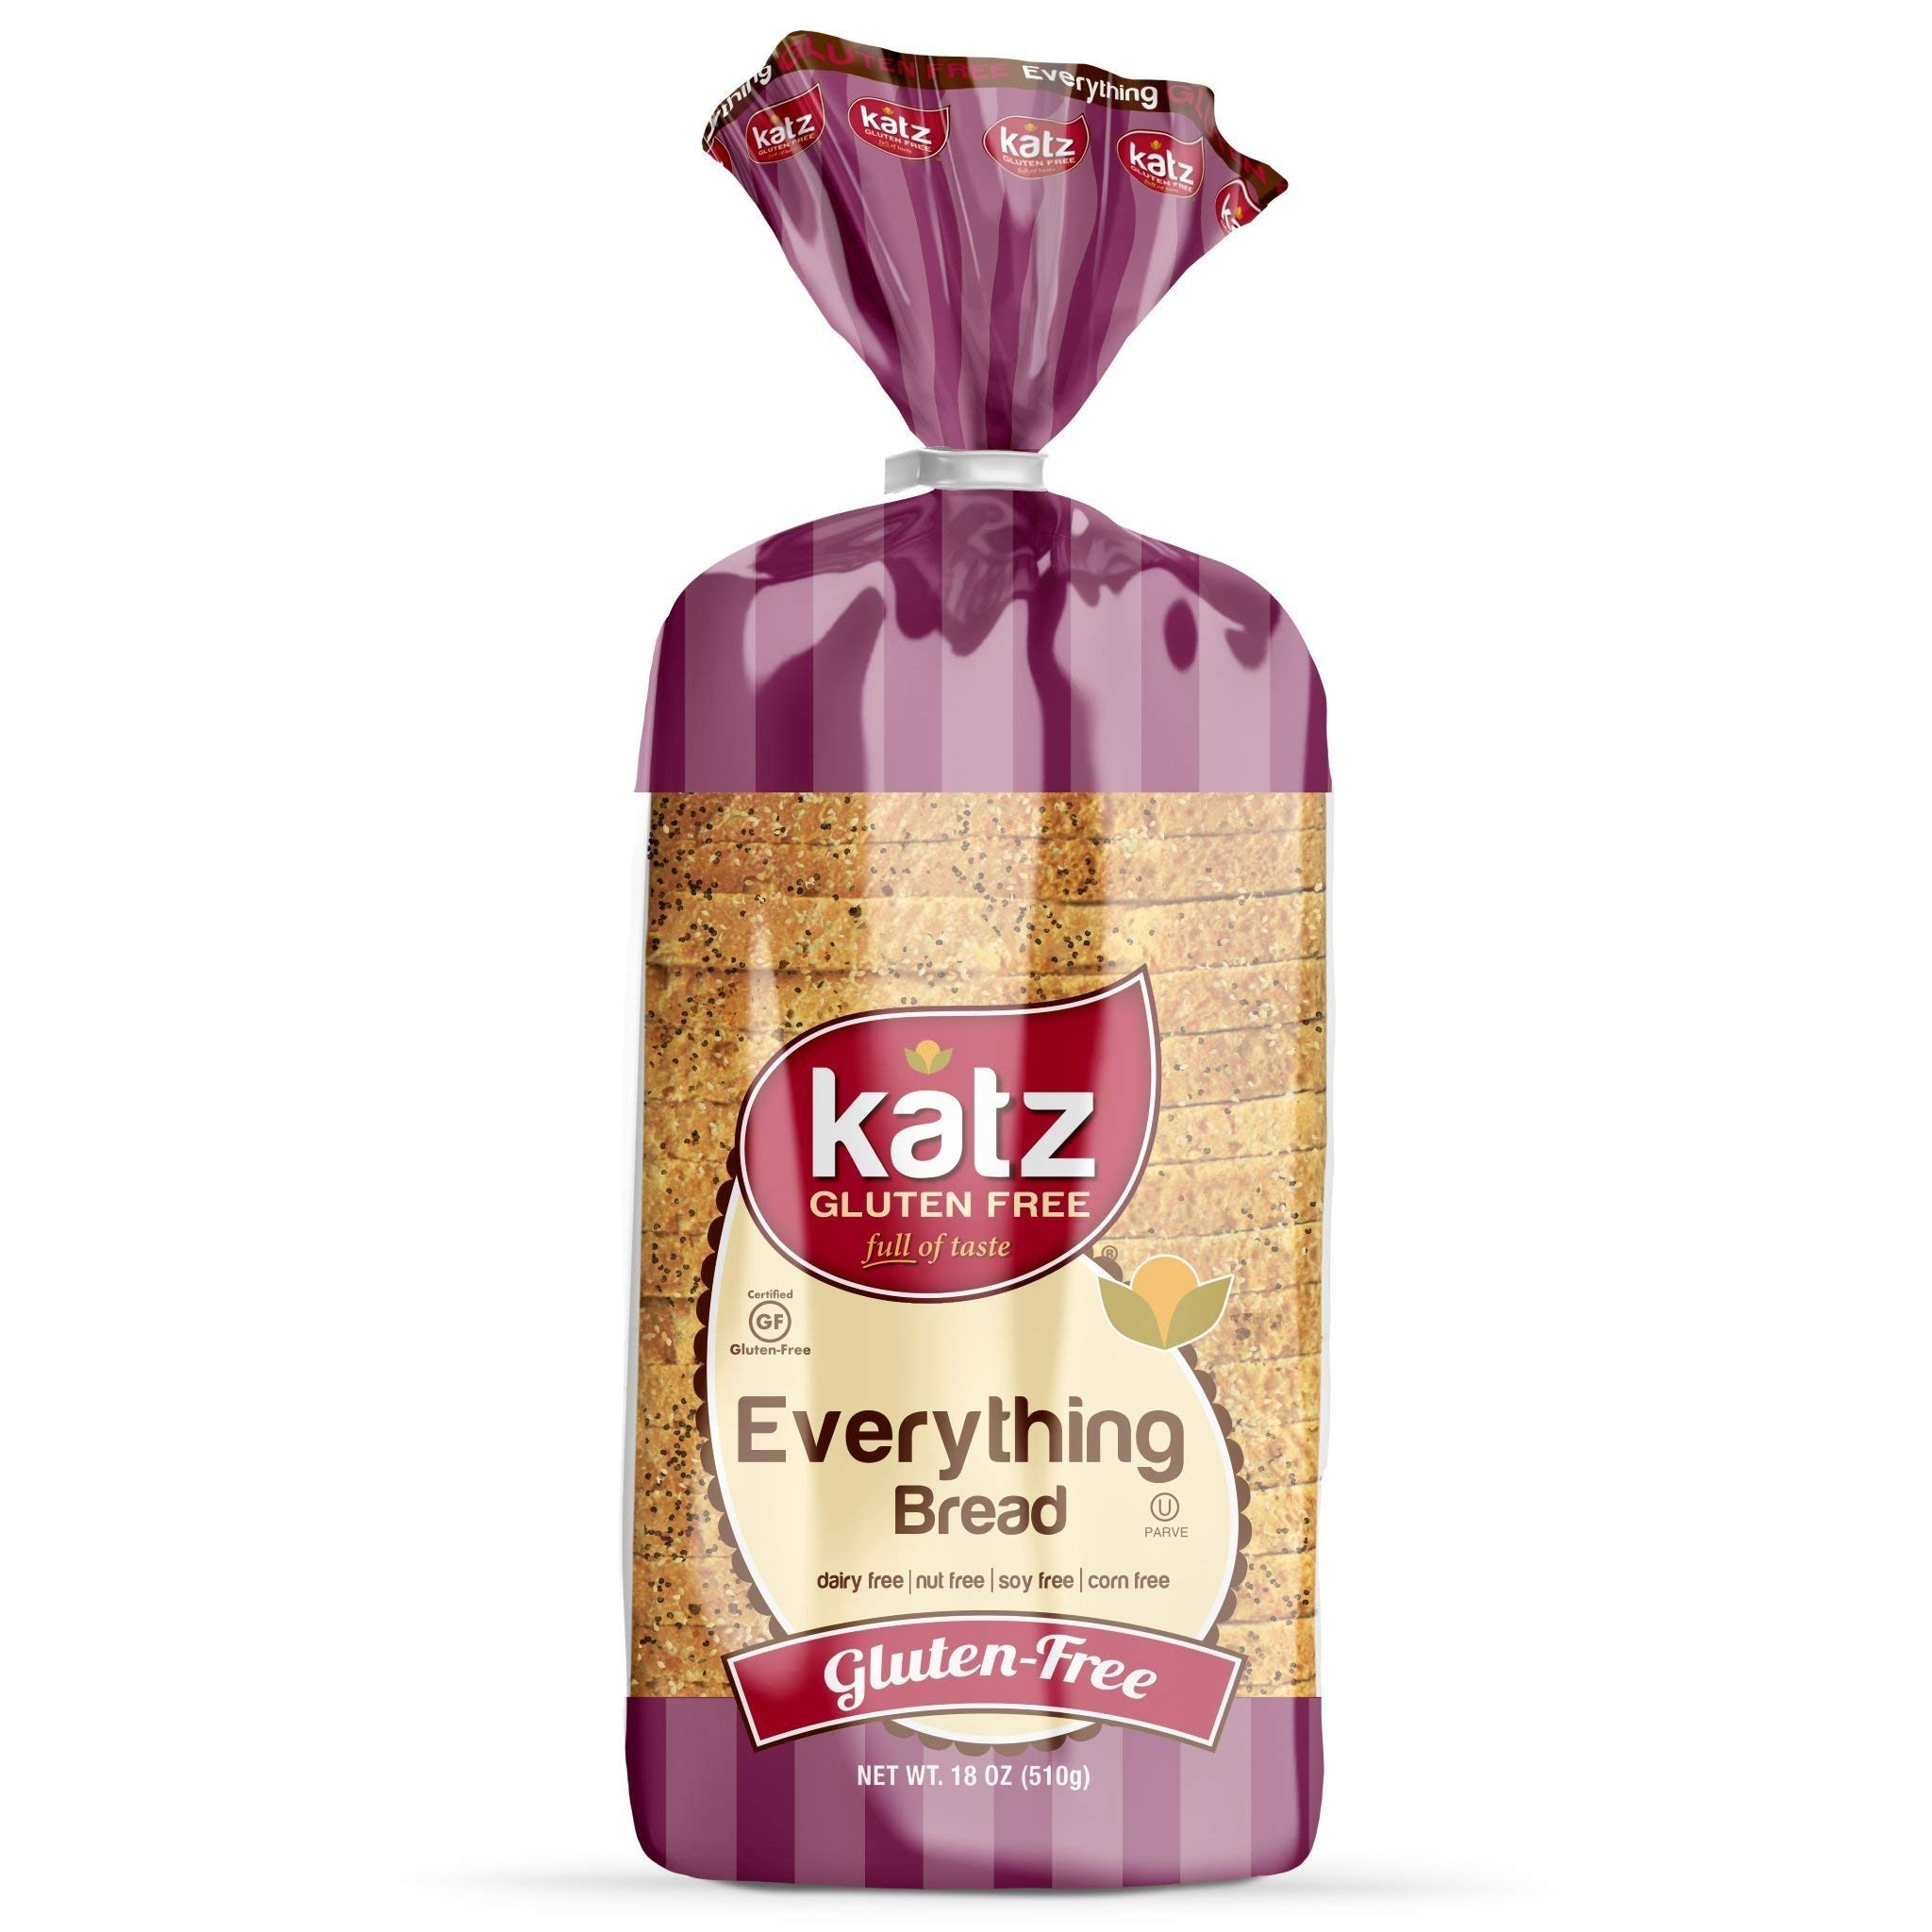 Katz Gluten Free Everything Bread | Dairy, Nut, Soy and Gluten Free | Kosher (6 Packs of 1 Sliced Loaf, 18 Ounce Each) by Katz Gluten Free